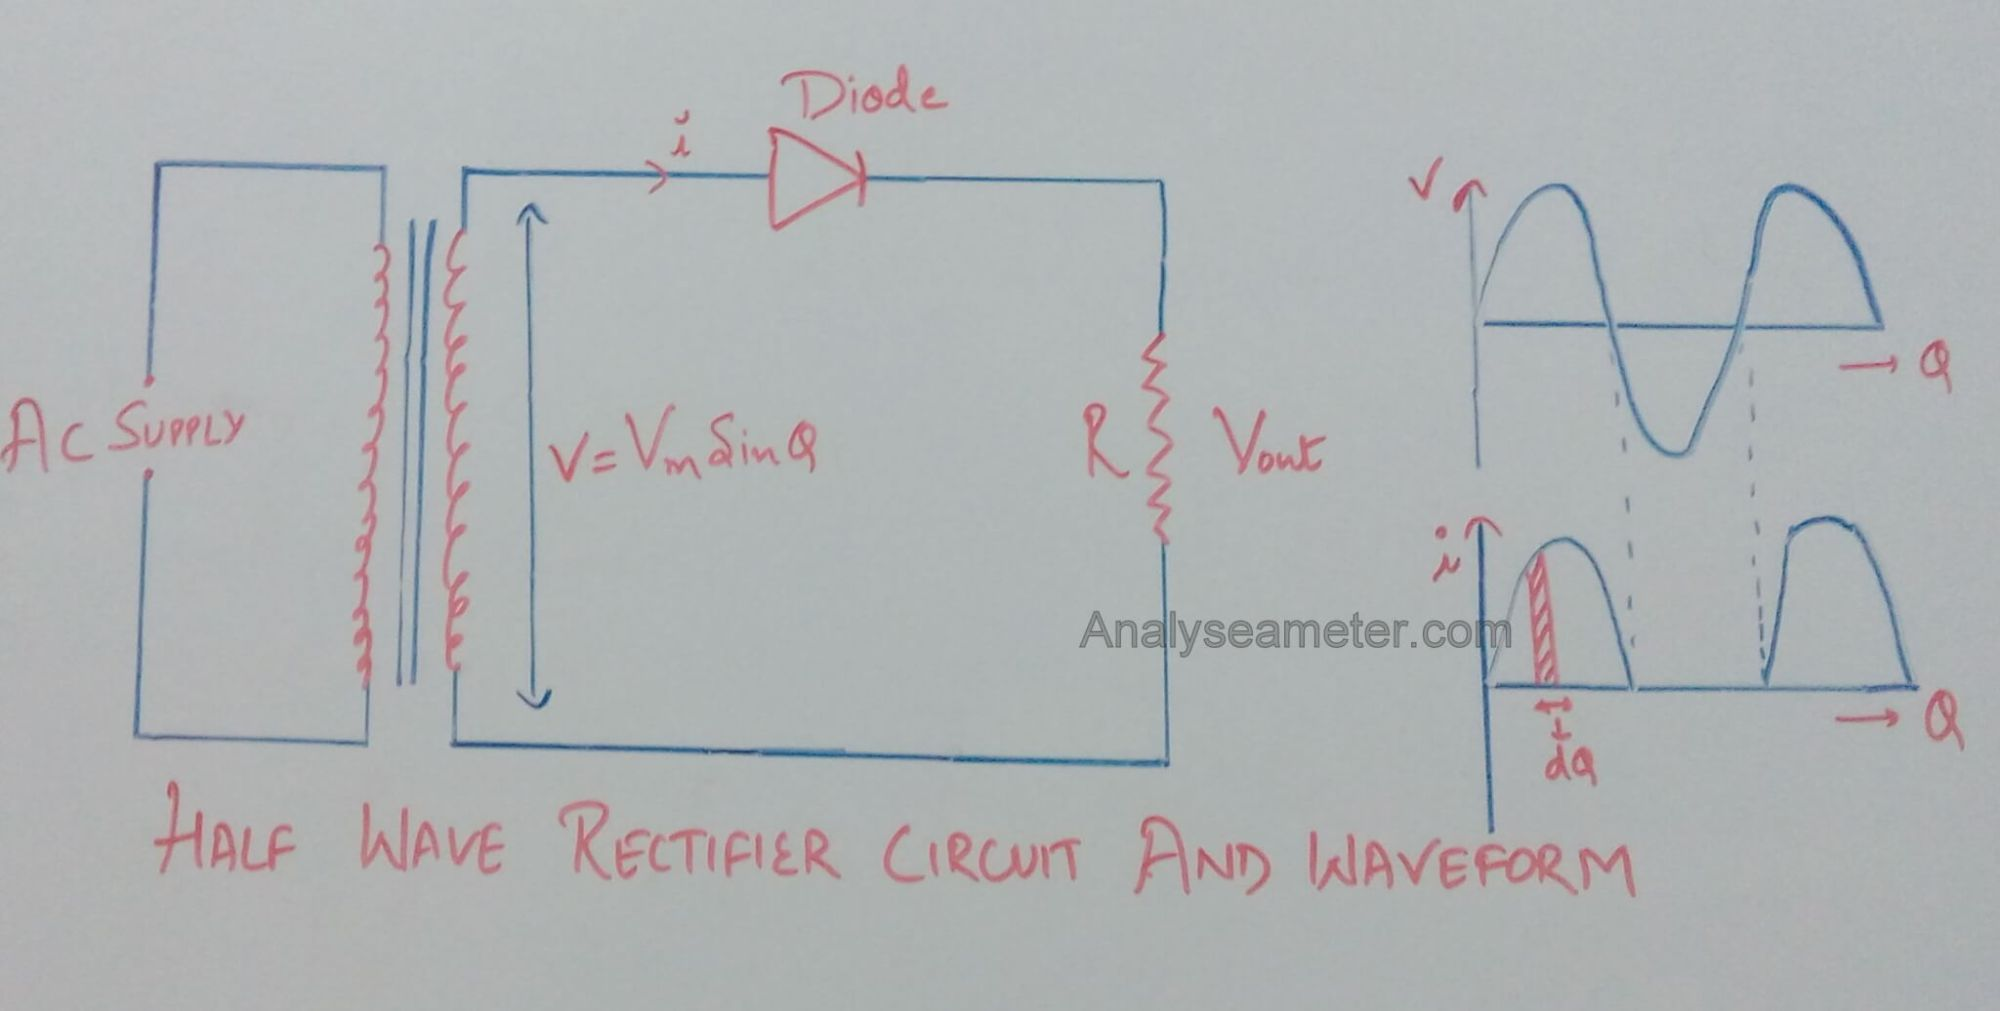 hight resolution of half wave rectifier efficiency circuit image the waveform diagram above shows only positive waveform at the output and suppressed or no negative waveform